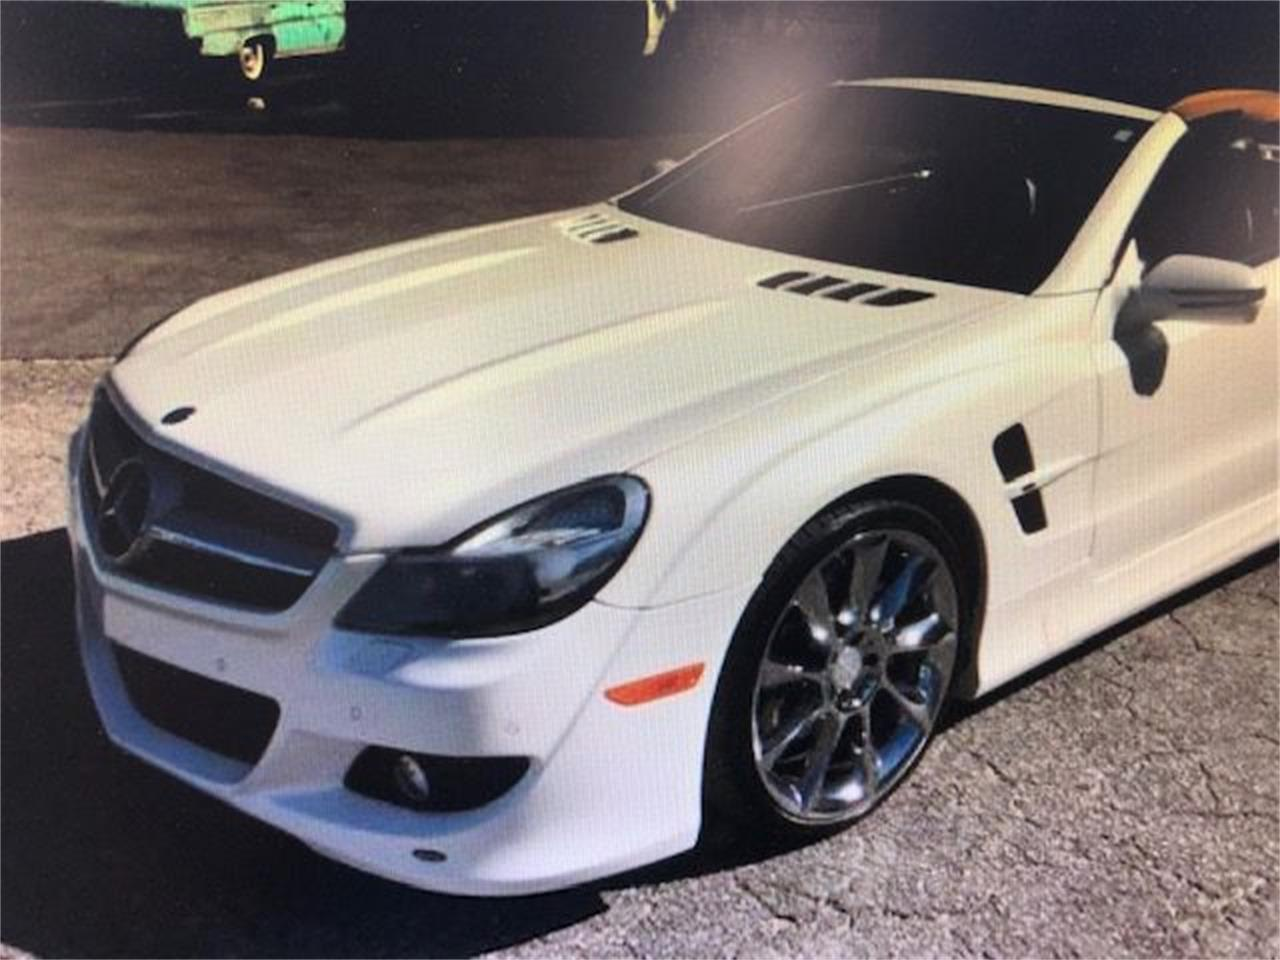 2011 Mercedes-Benz SL-Class (CC-1214263) for sale in Boca Raton, Florida